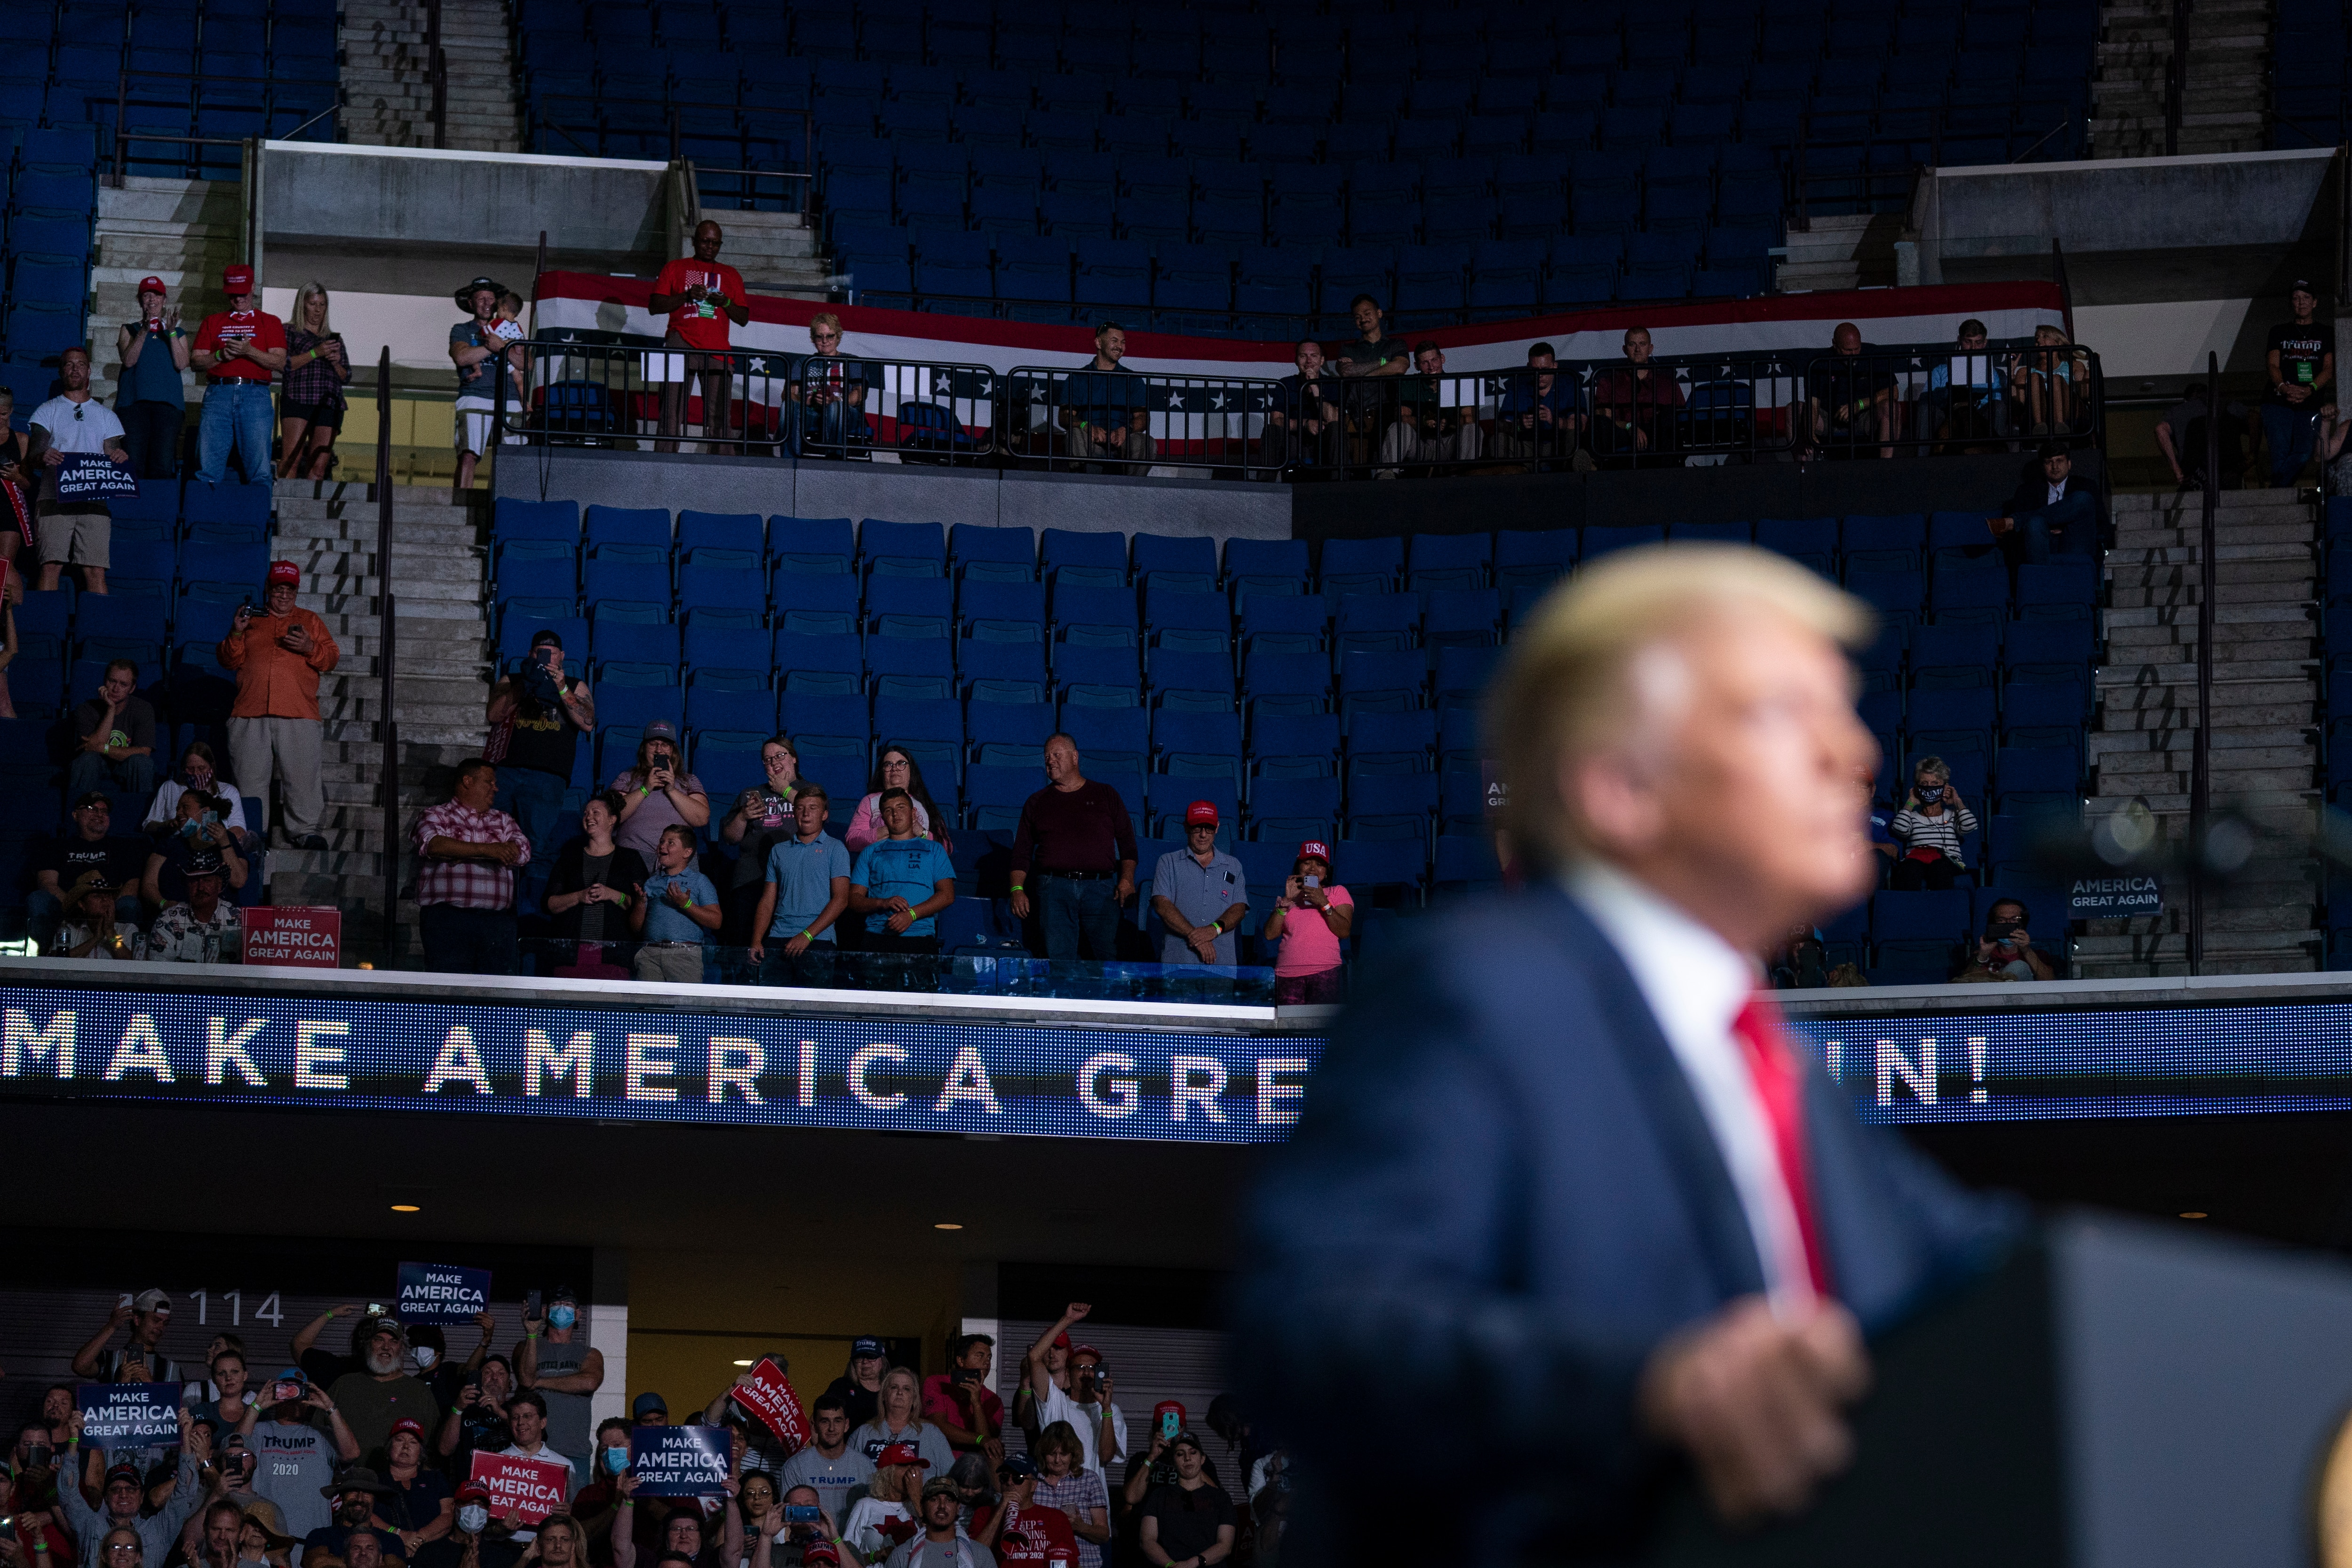 President Donald Trump speaks during a campaign rally at the BOK Center, Saturday, June 20, 2020, in Tulsa, Okla. (AP Photo/Evan Vucci)